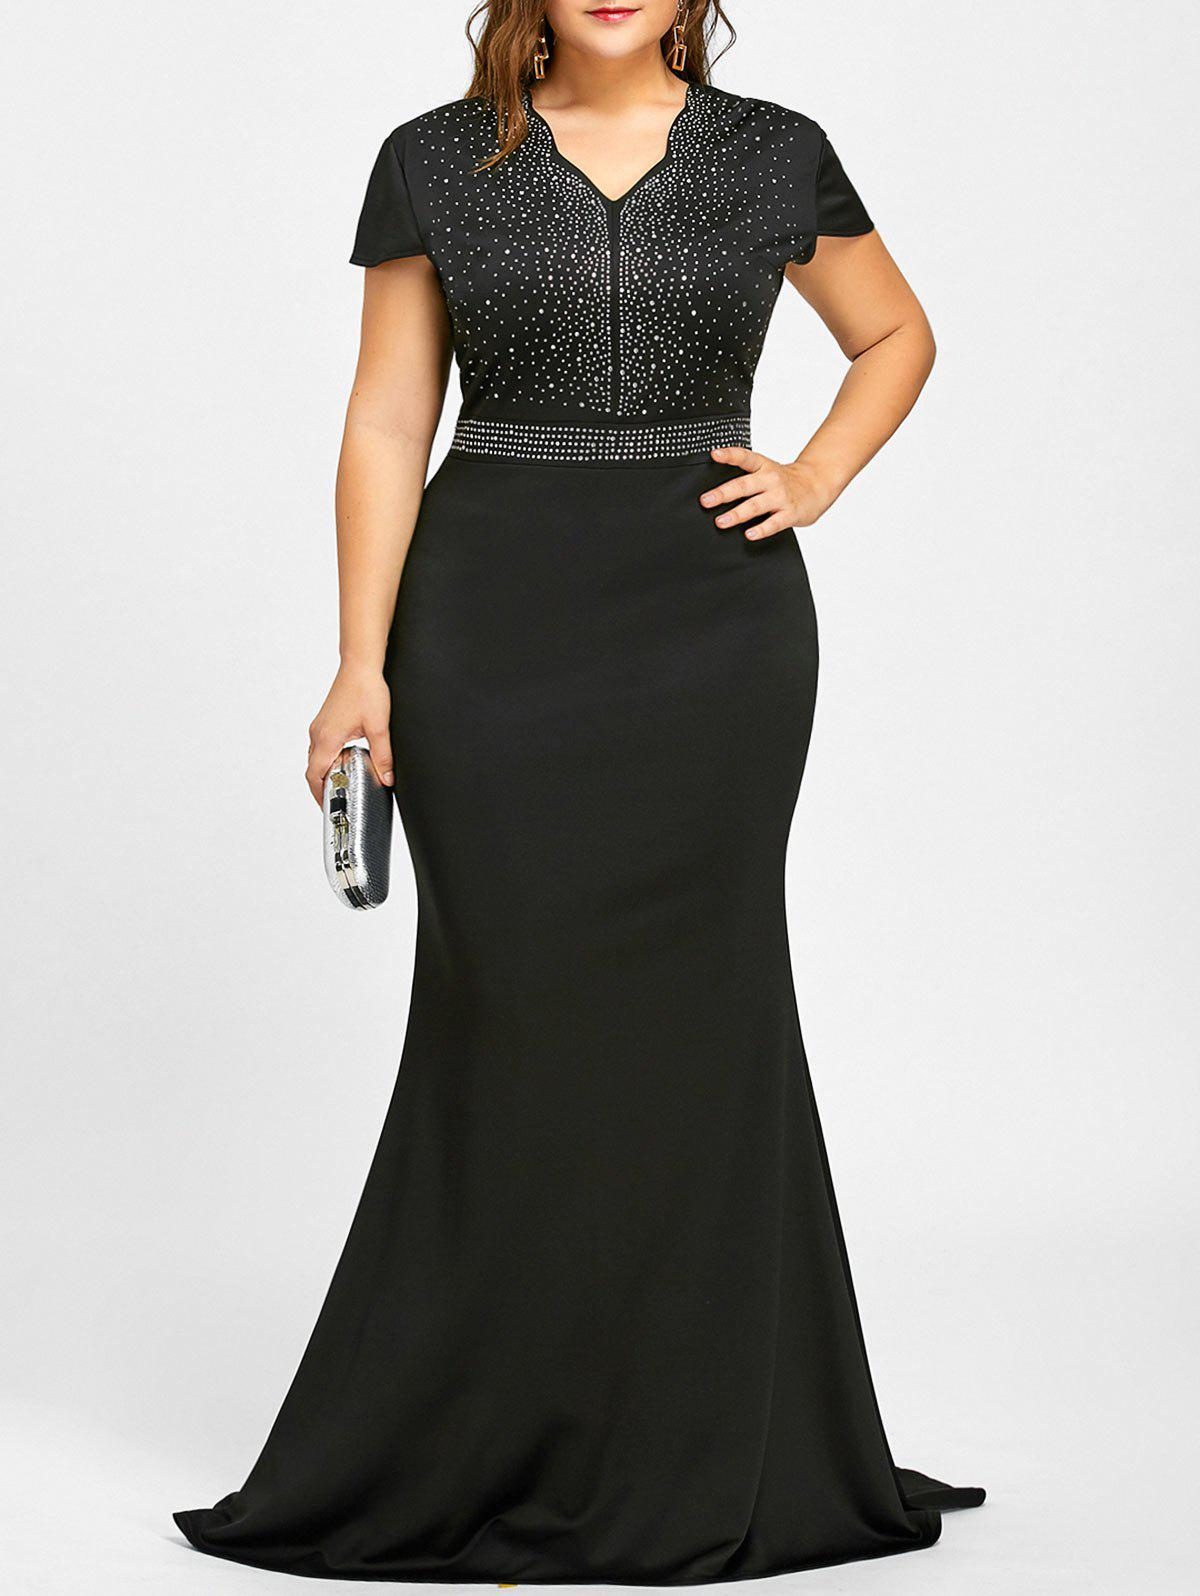 39% OFF] Rhinestone Maxi Plus Size Formal Dress | Rosegal